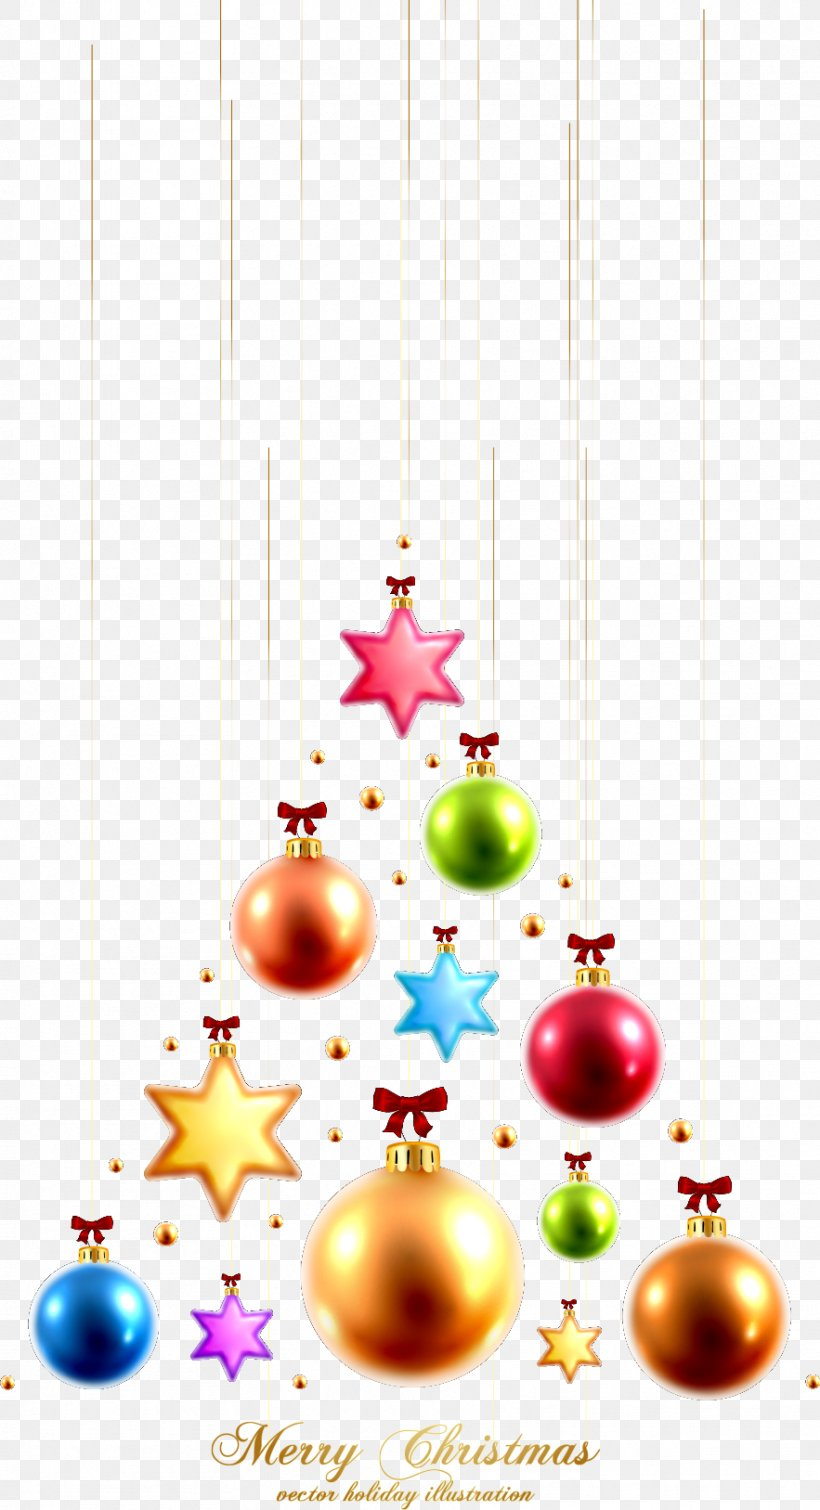 Christmas Ornament Santa Claus Christmas Tree, PNG, 883x1627px, Santa Claus, Christmas, Christmas Decoration, Christmas Lights, Christmas Ornament Download Free